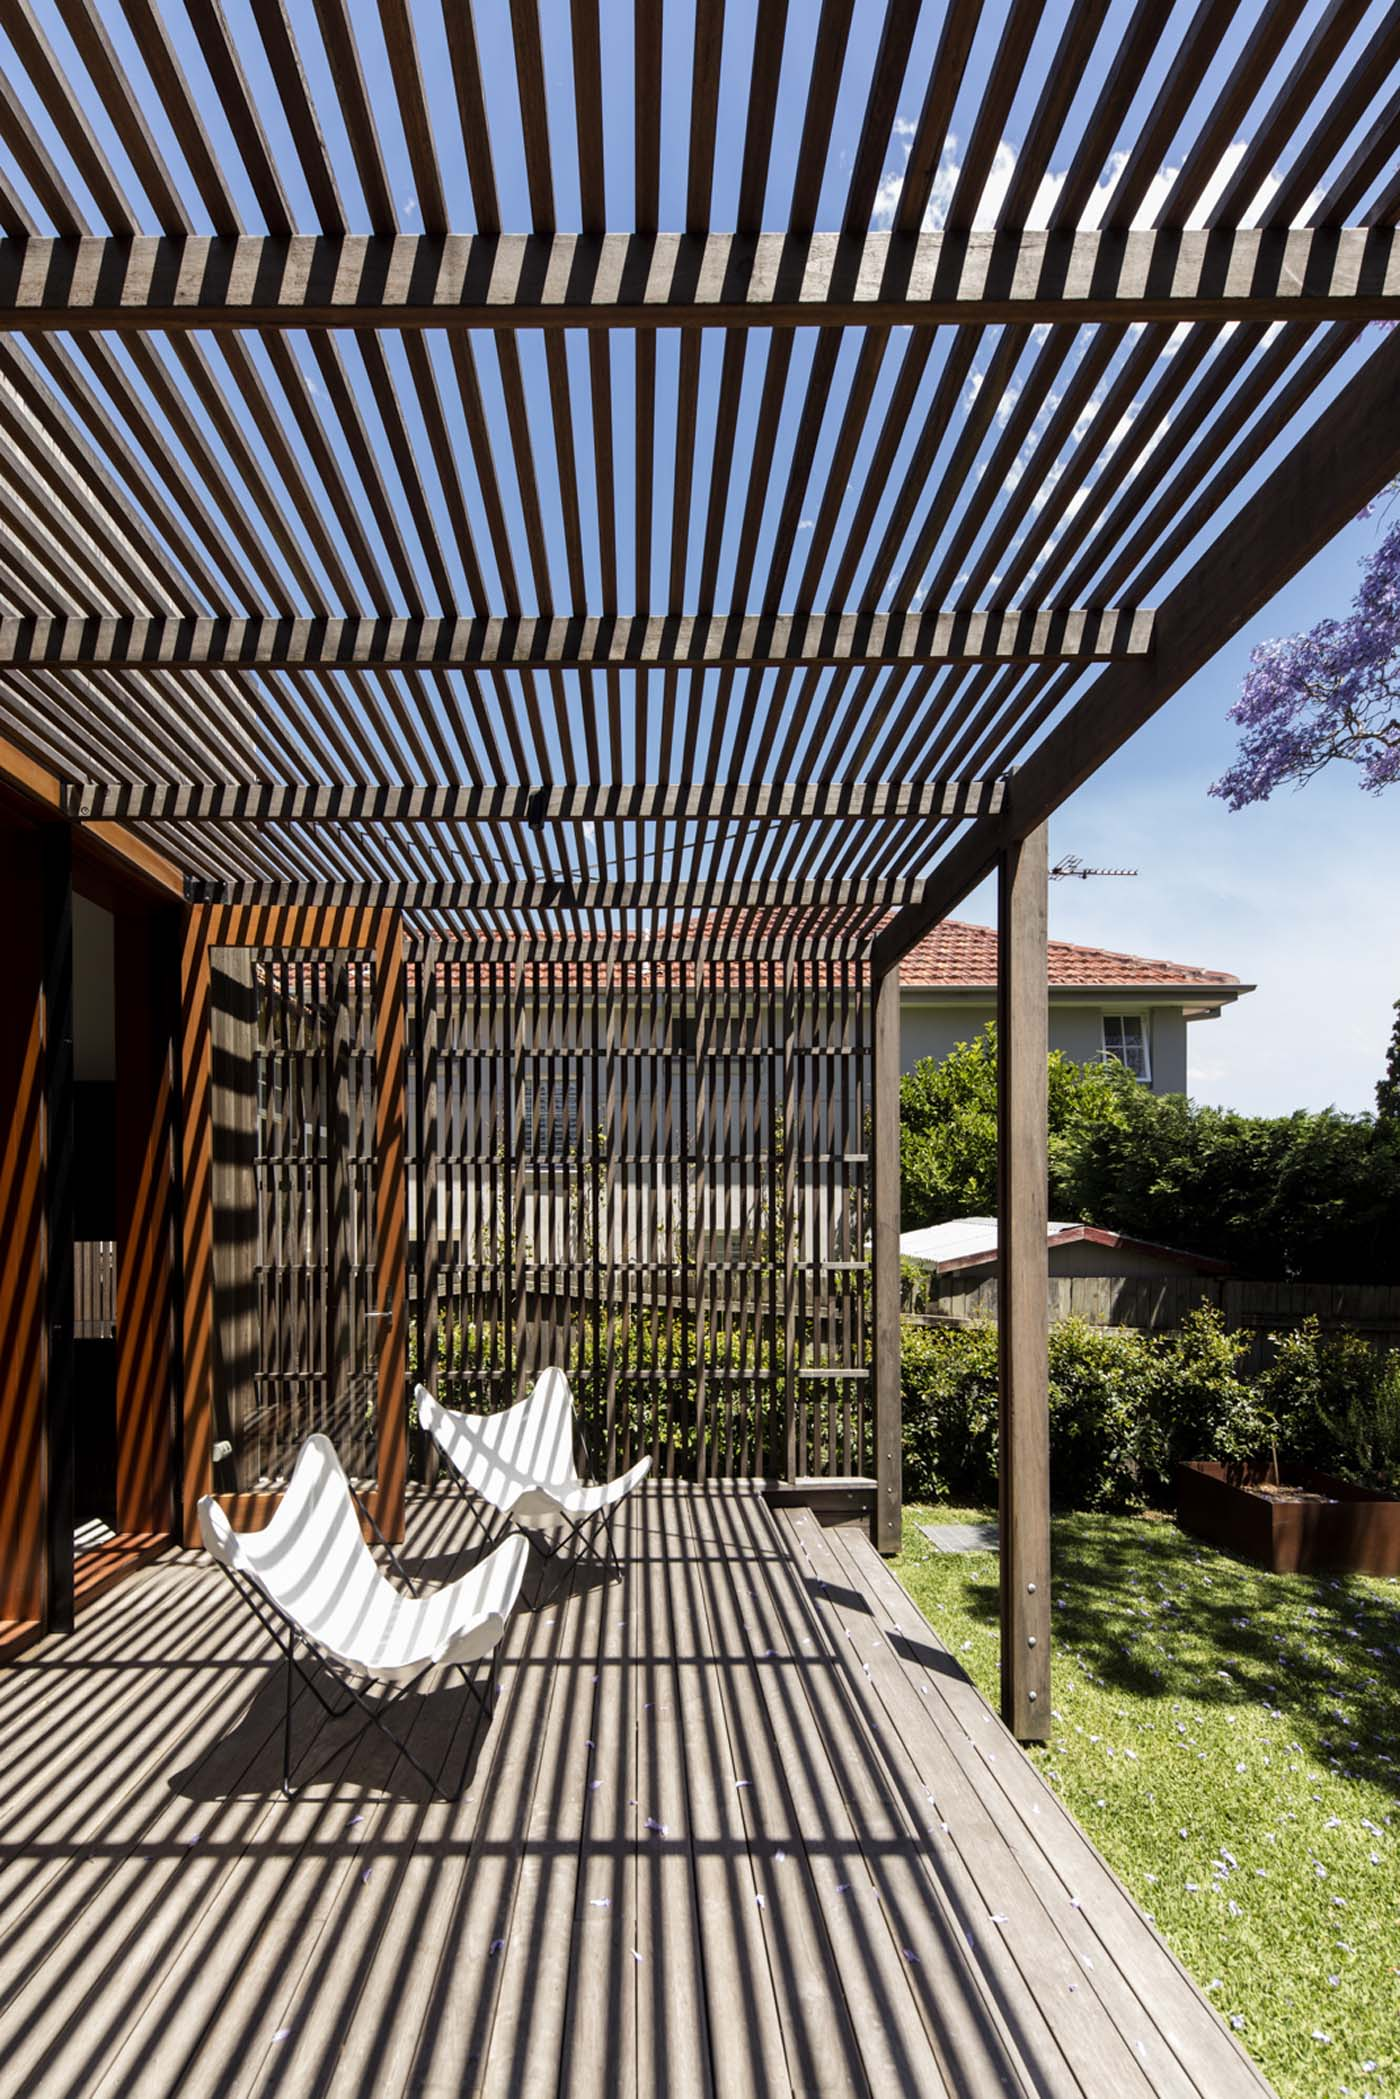 Sung Dobson house by Sam Crawford Architects, Sydney. Timber pergola offers shade.